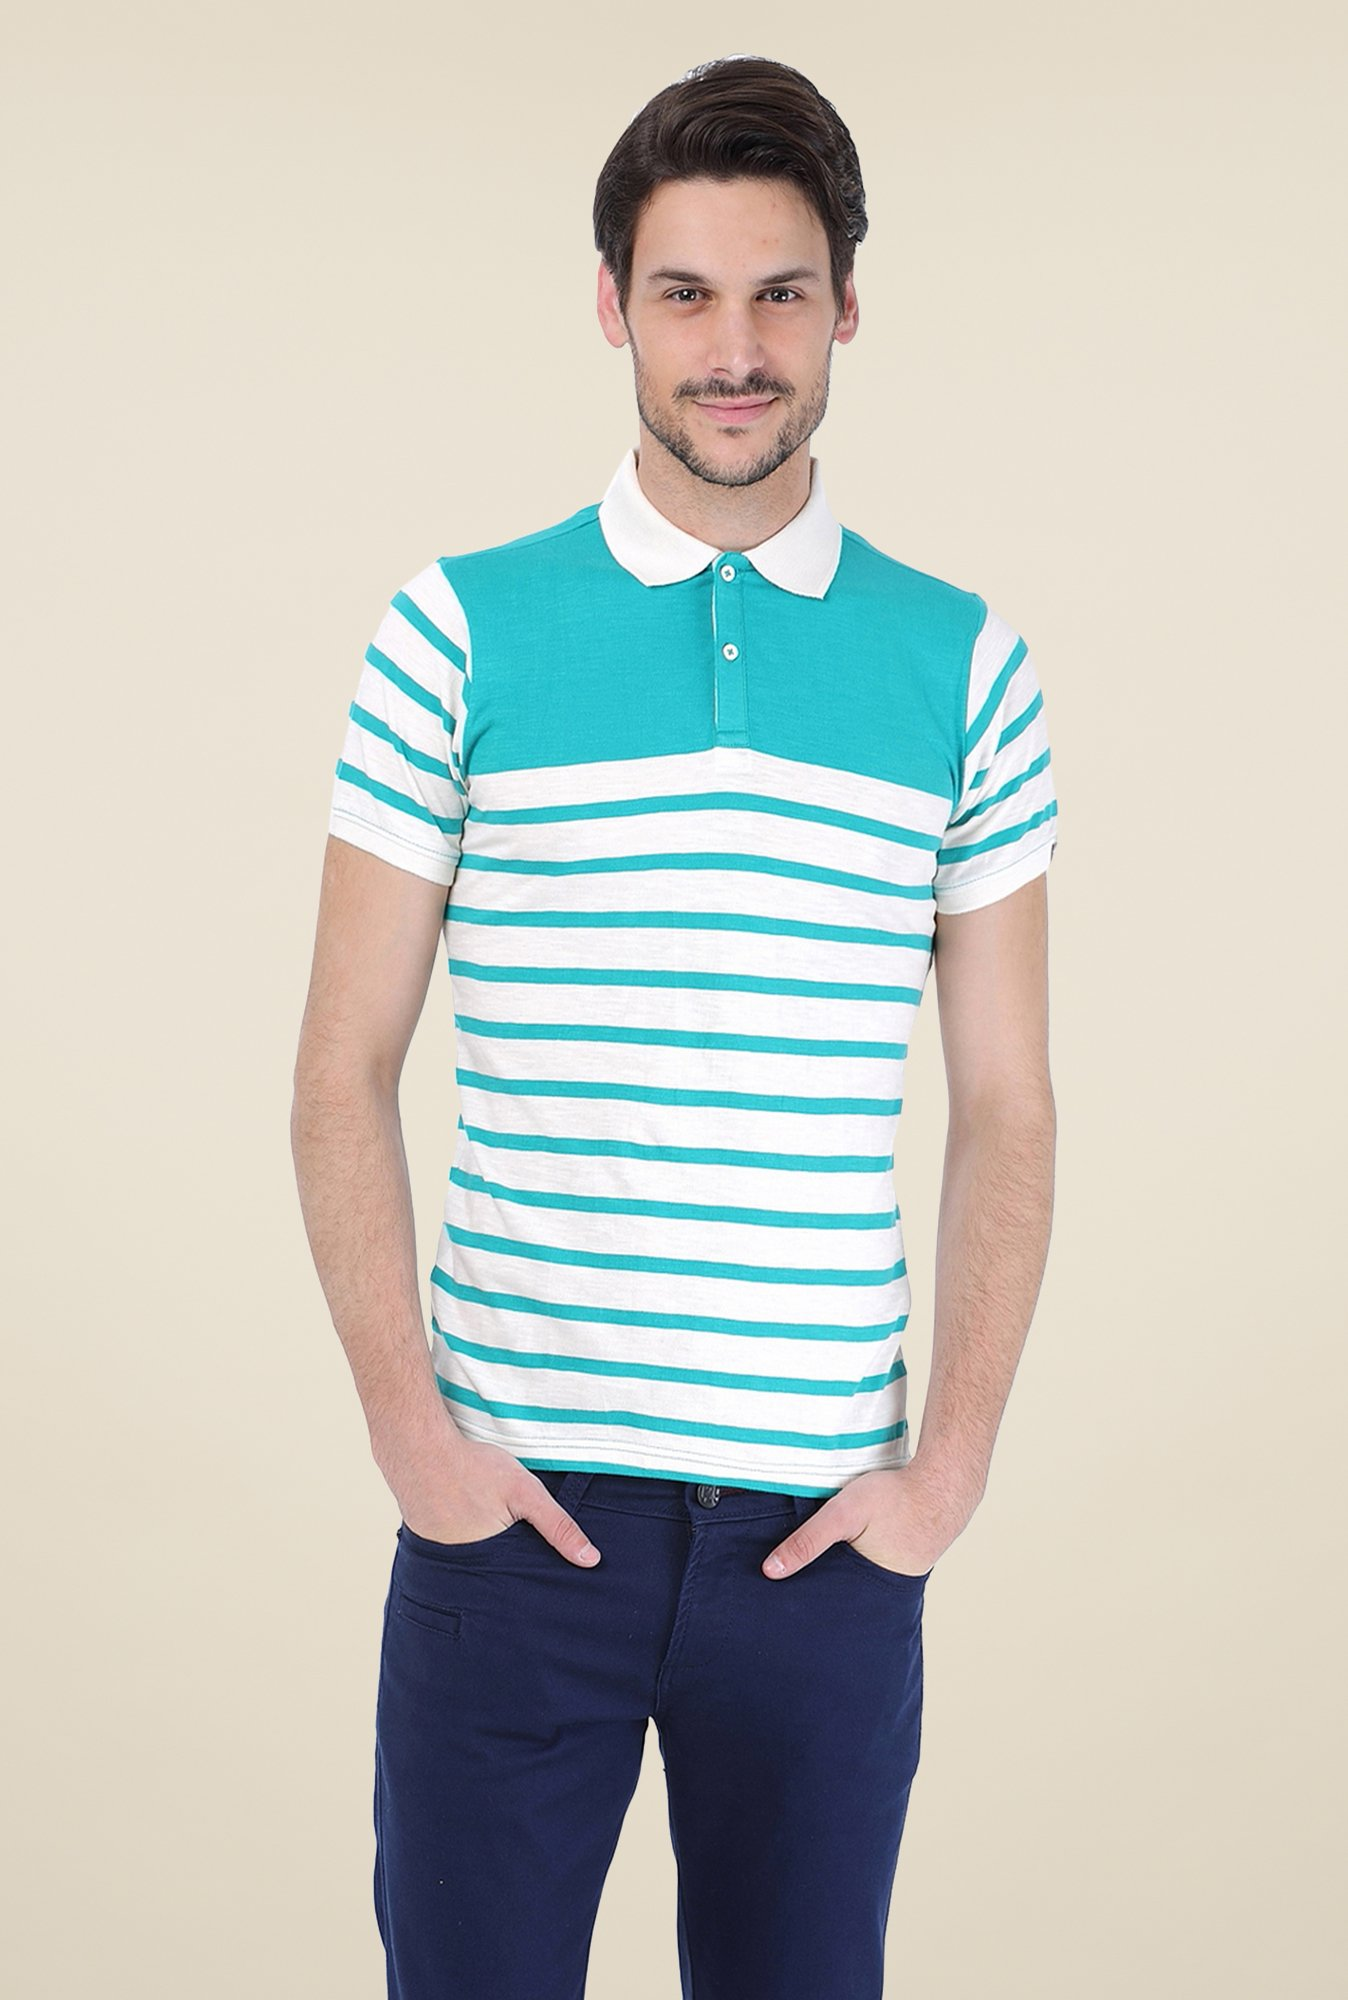 Basics Turquoise Striped Polo T-shirt